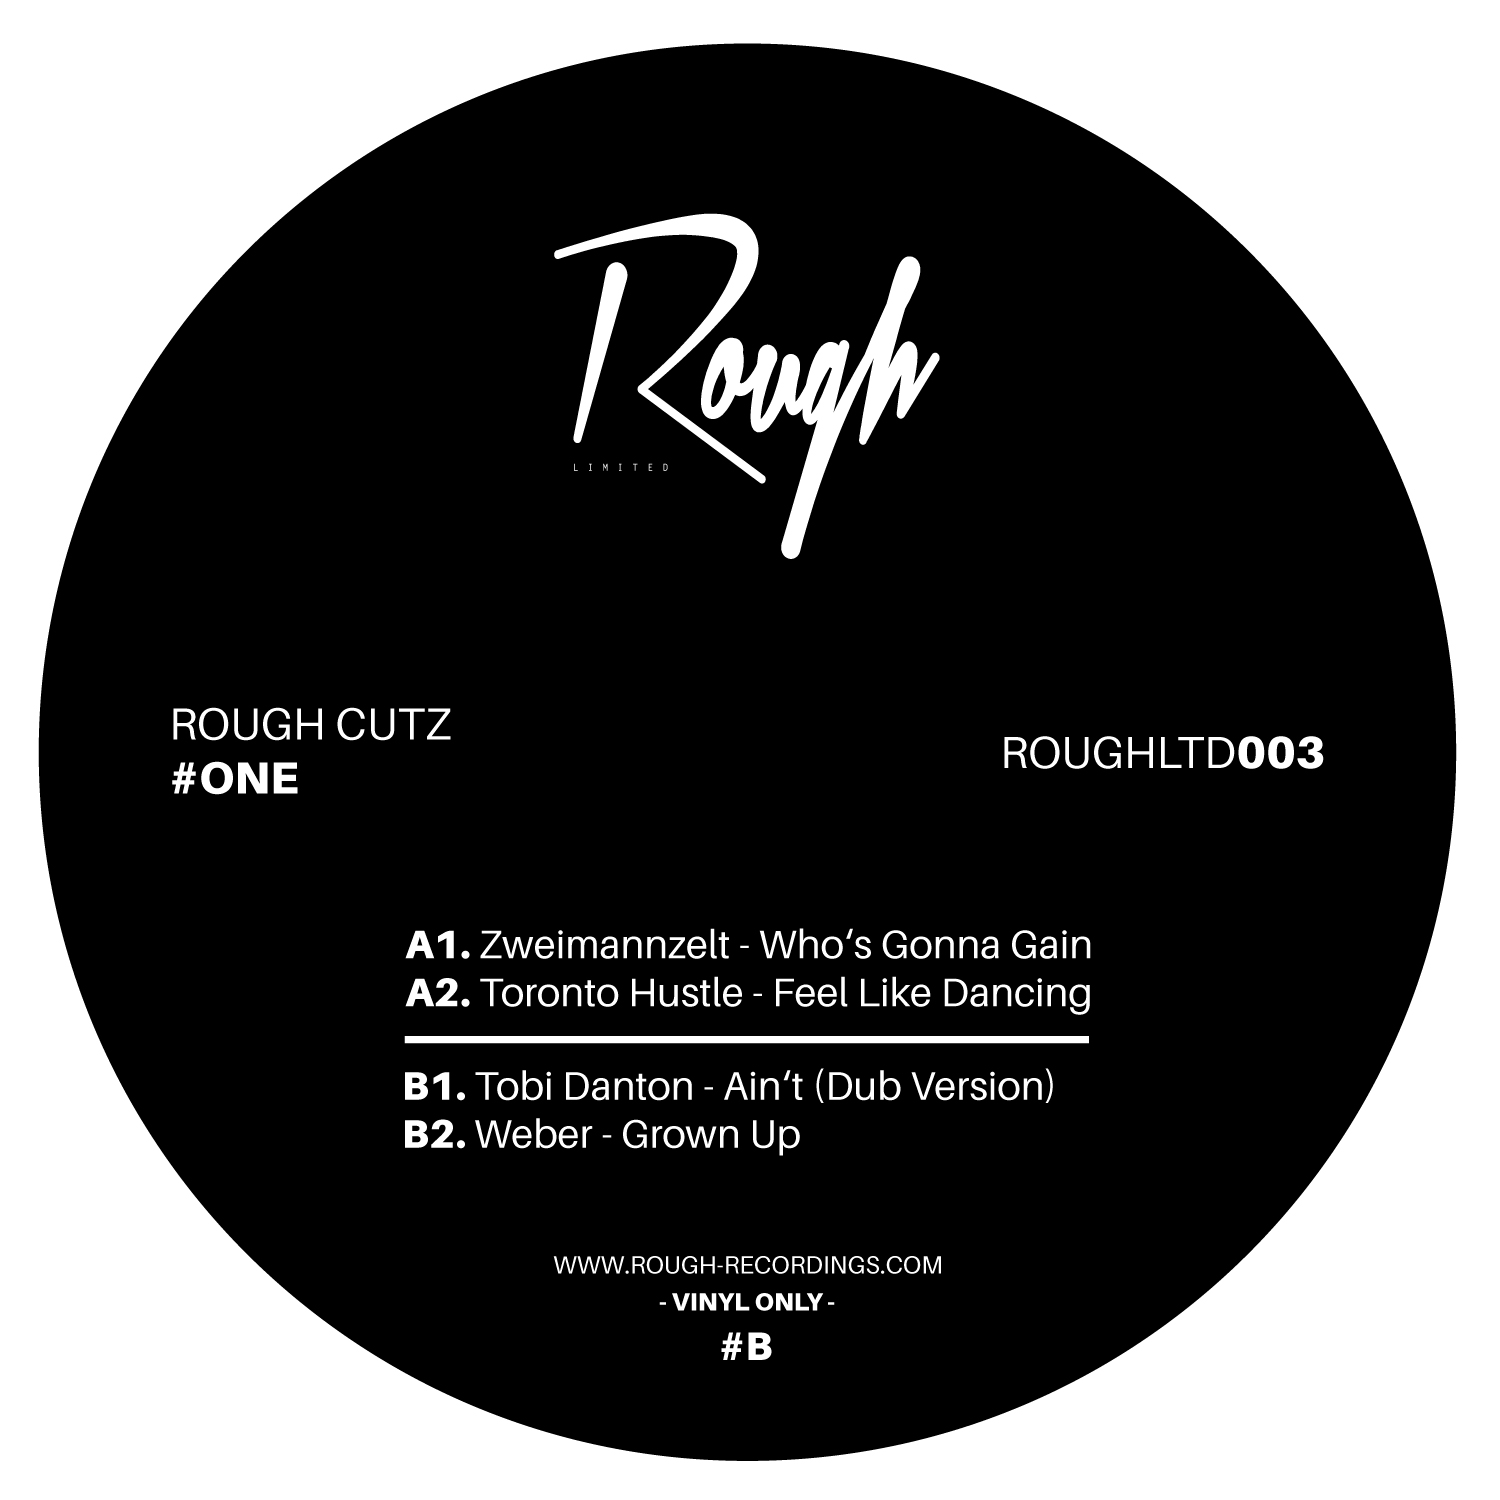 https://www.rough-recordings.com/wp-content/uploads/ROUGHLTD003_B.jpg